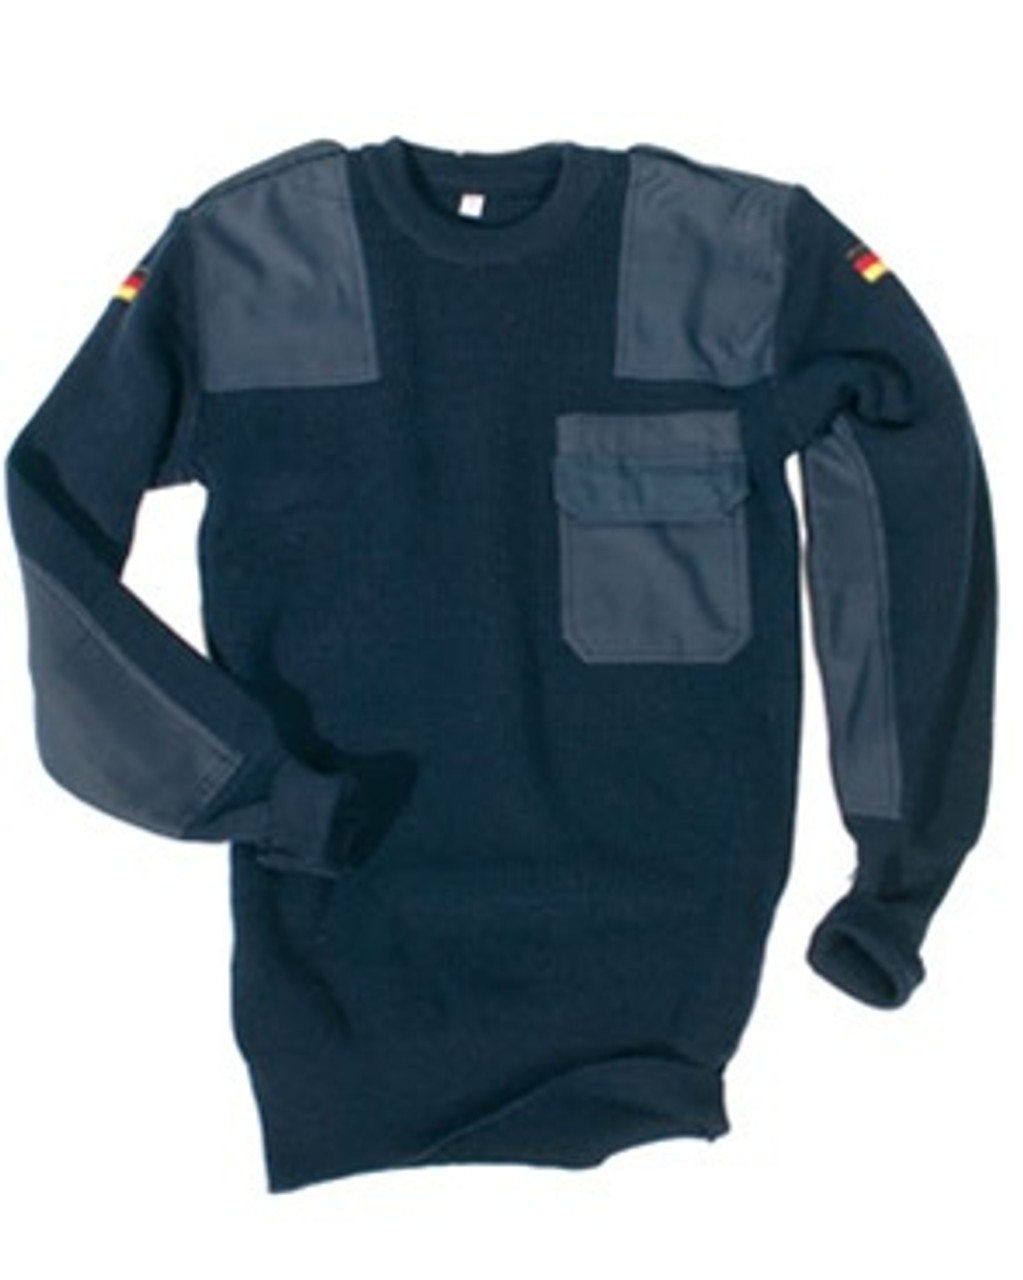 German Blue Commando Sweater from Hessen Antique